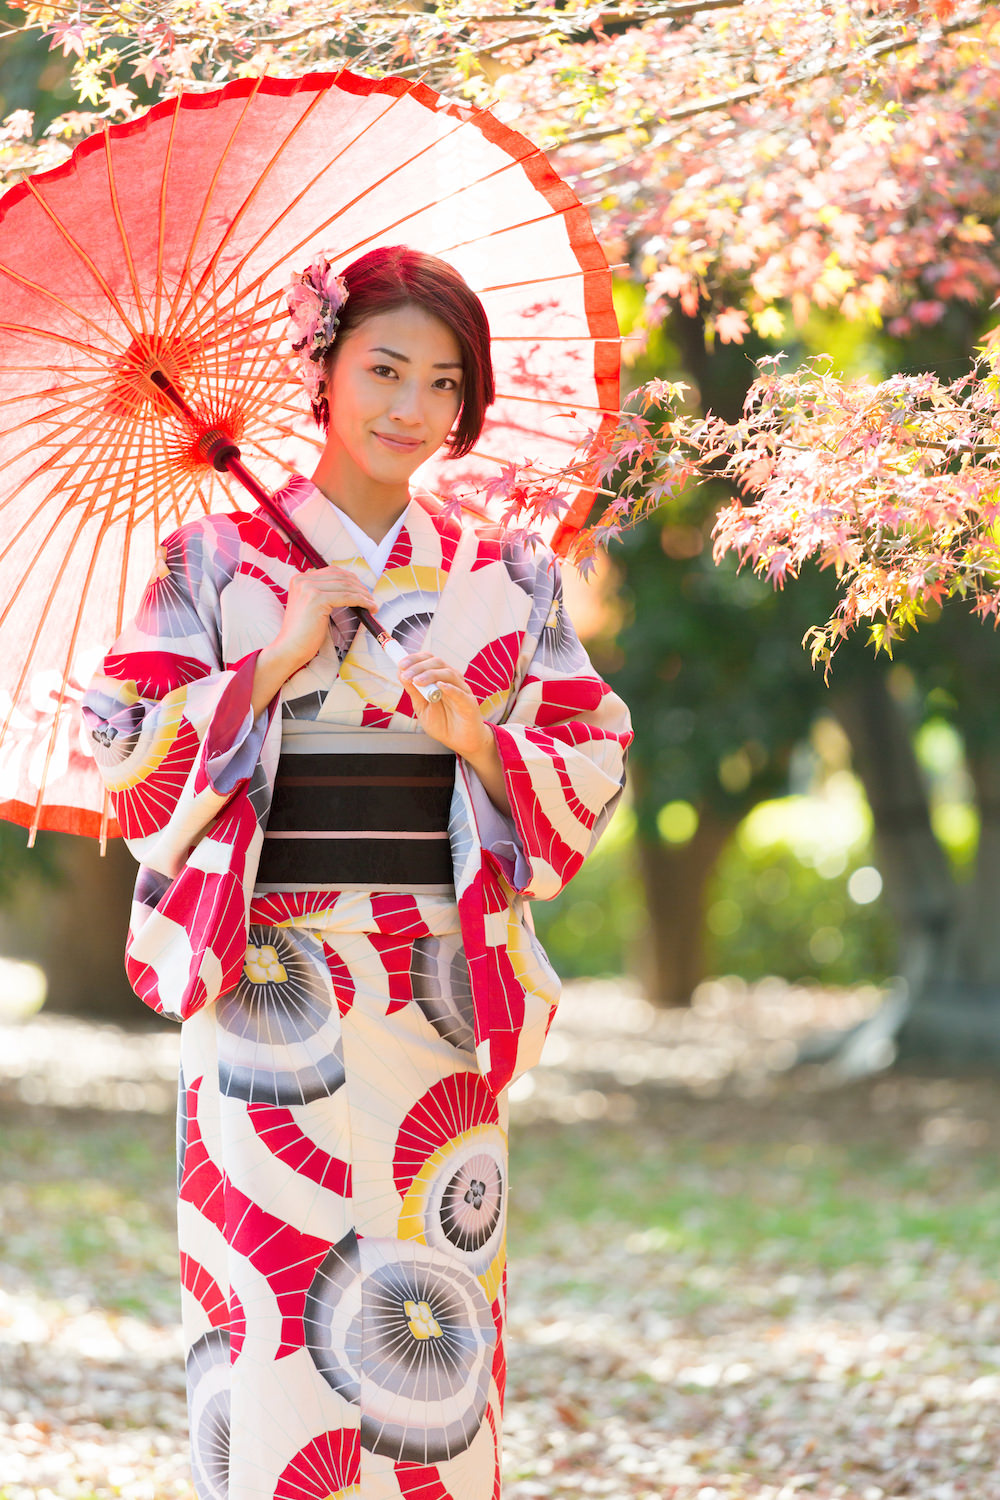 A woman holding a Japanese umbrella wearing a modern patterned kimono